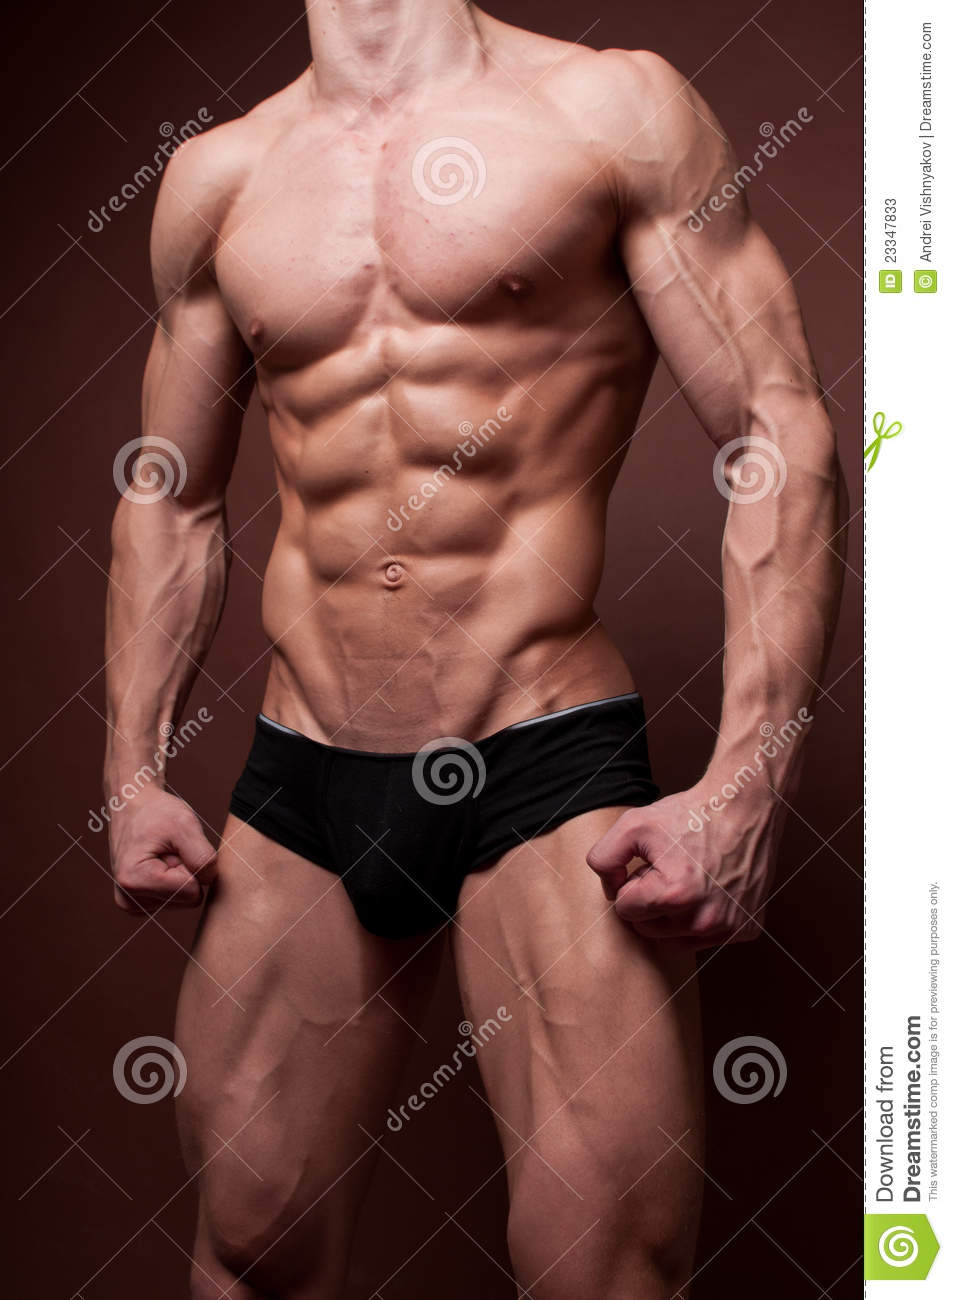 Best naked blond men gay brent is the 6